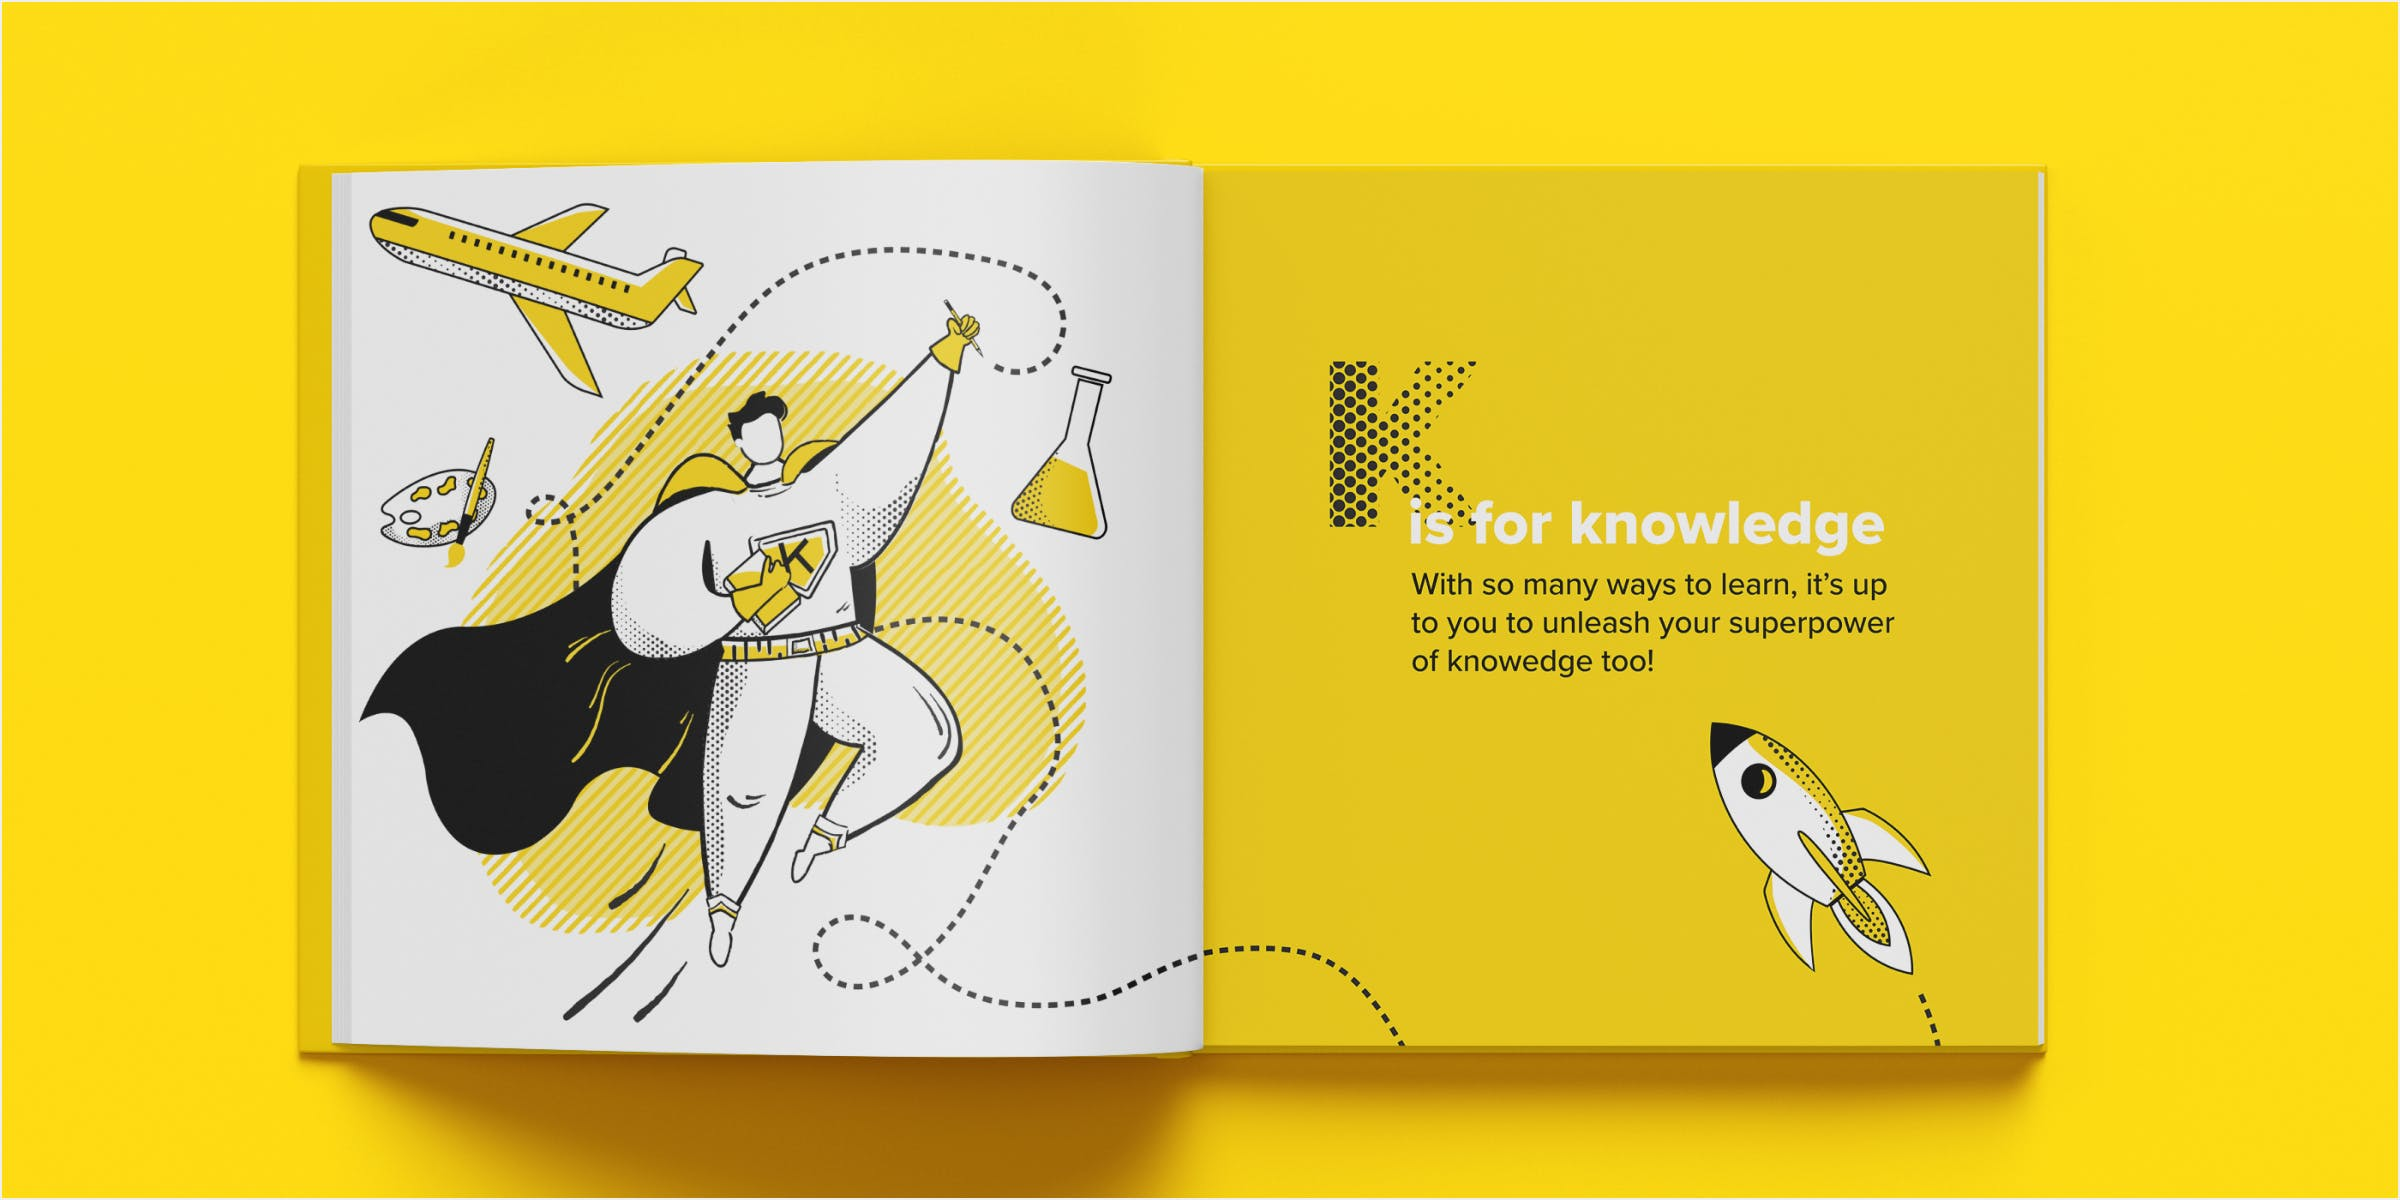 Mockup of knowledge spread in a book. An illustrated superhero figure in motion holding a book and pencil surrounded by a plane, science beaker, artists palette, and a rocketship that continues onto the right page.